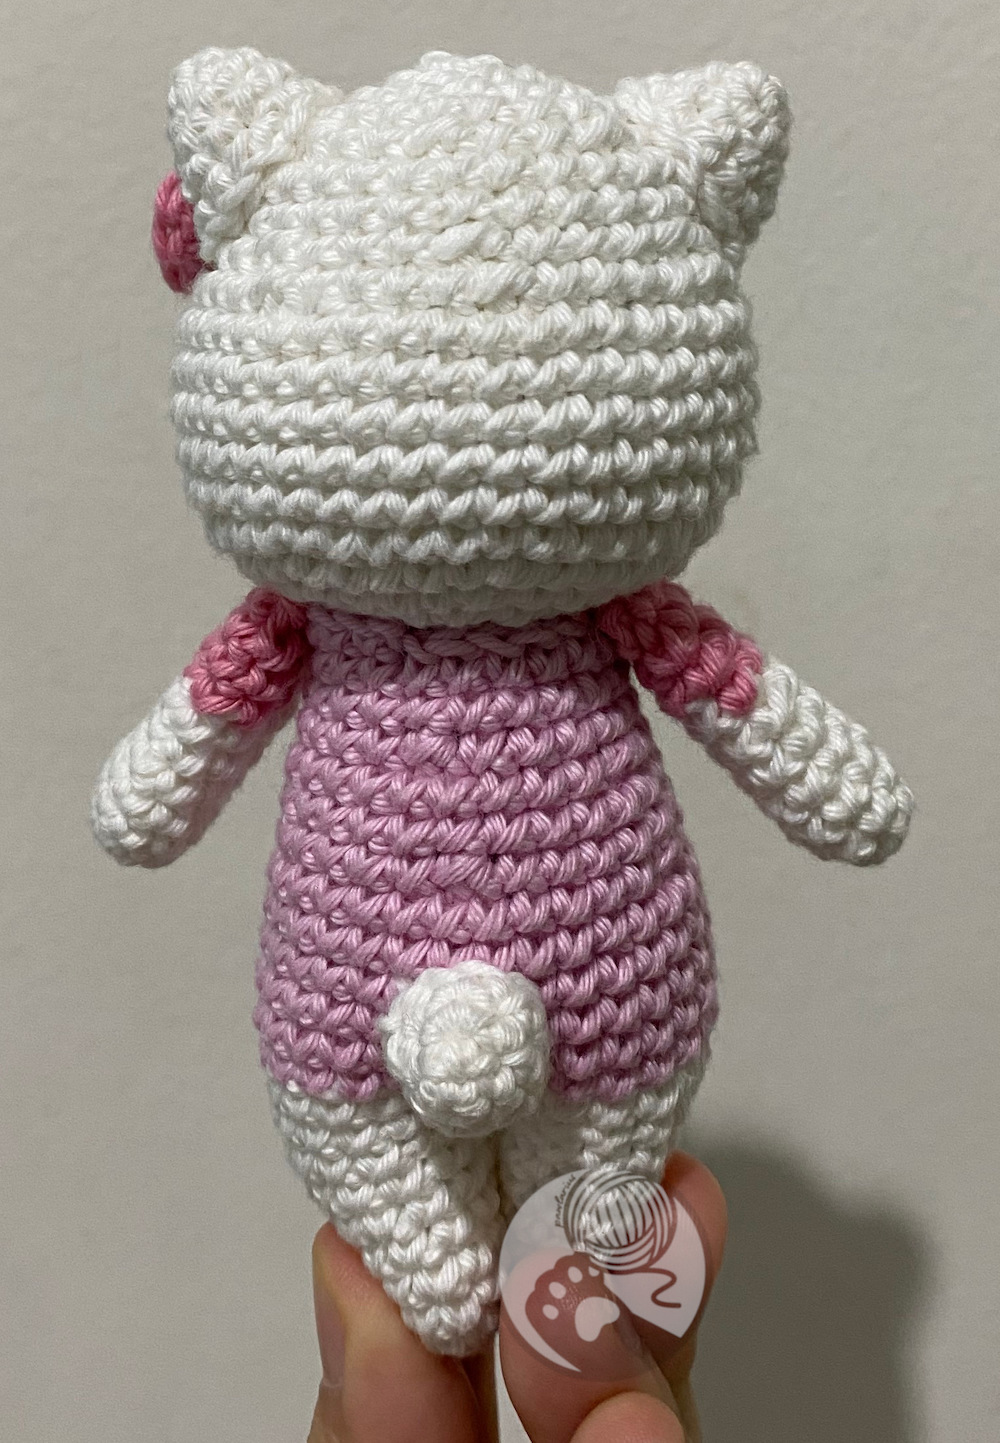 https://storage.googleapis.com/pawlarius-blog-assets/amigurumi/hello-kitty/back-position.jpg